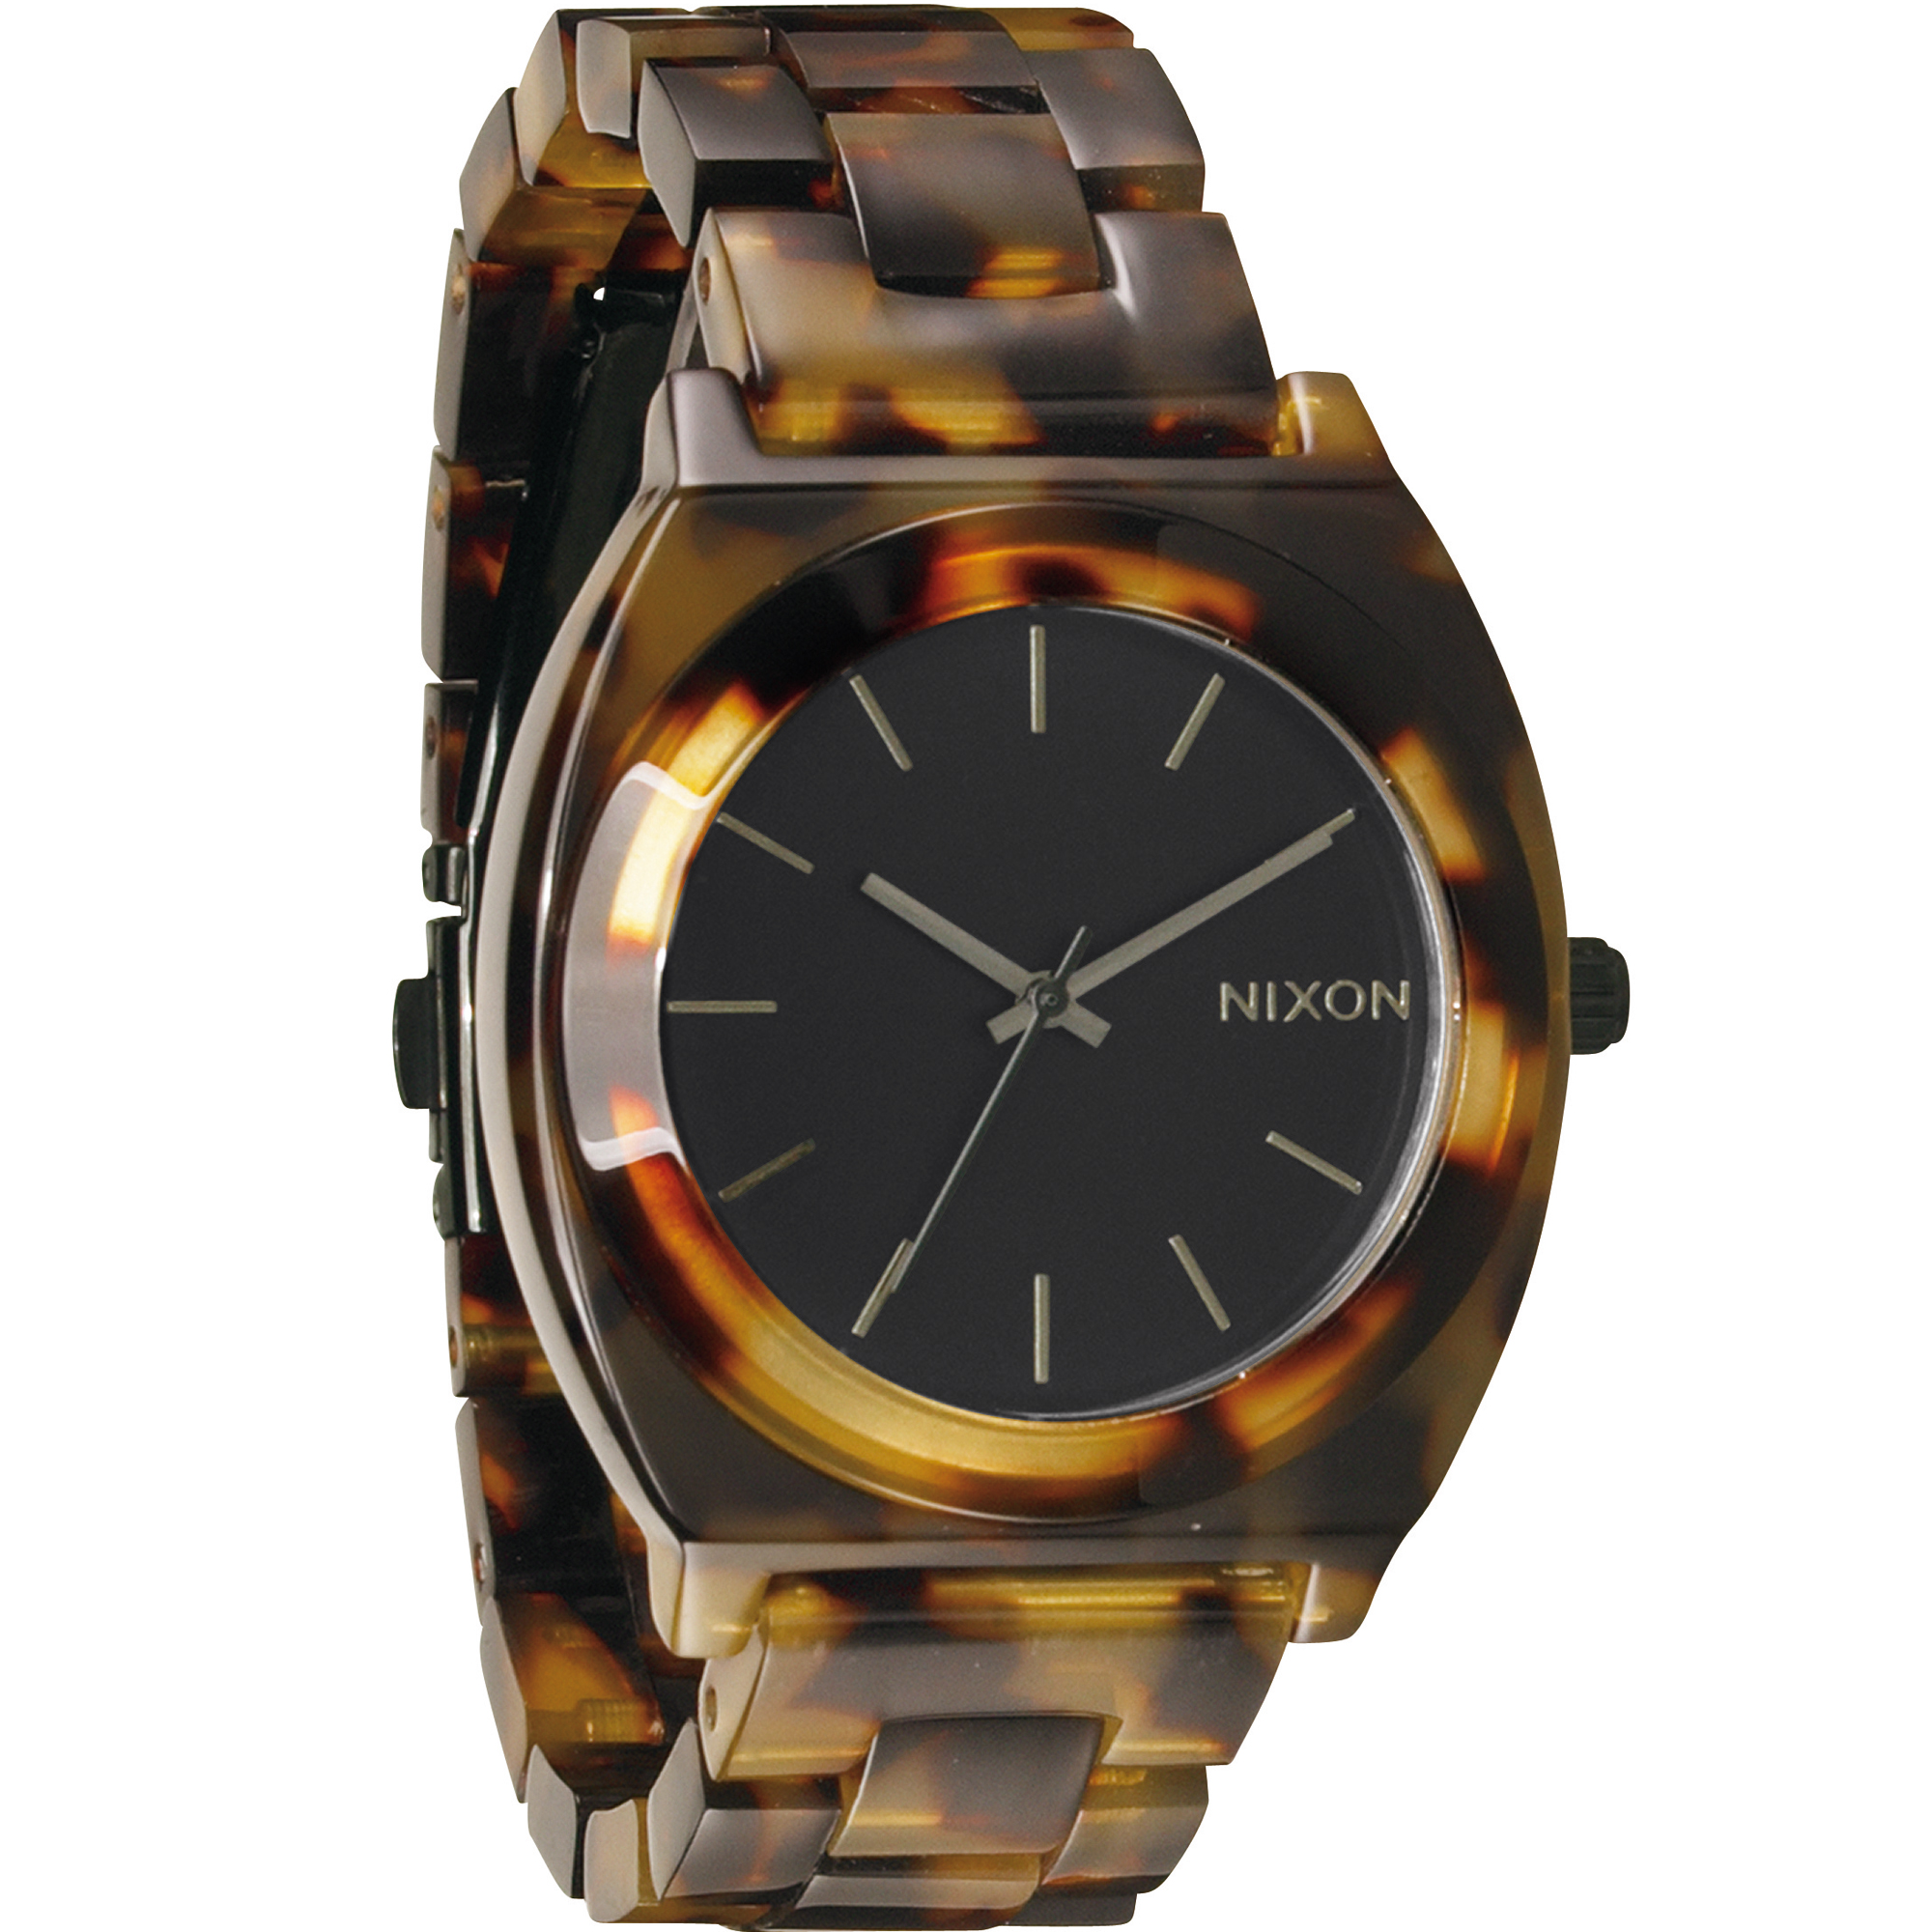 ddb02d7faff Unisex Nixon The Time Teller Acetate Watch (A327-646) | WatchShop.com™